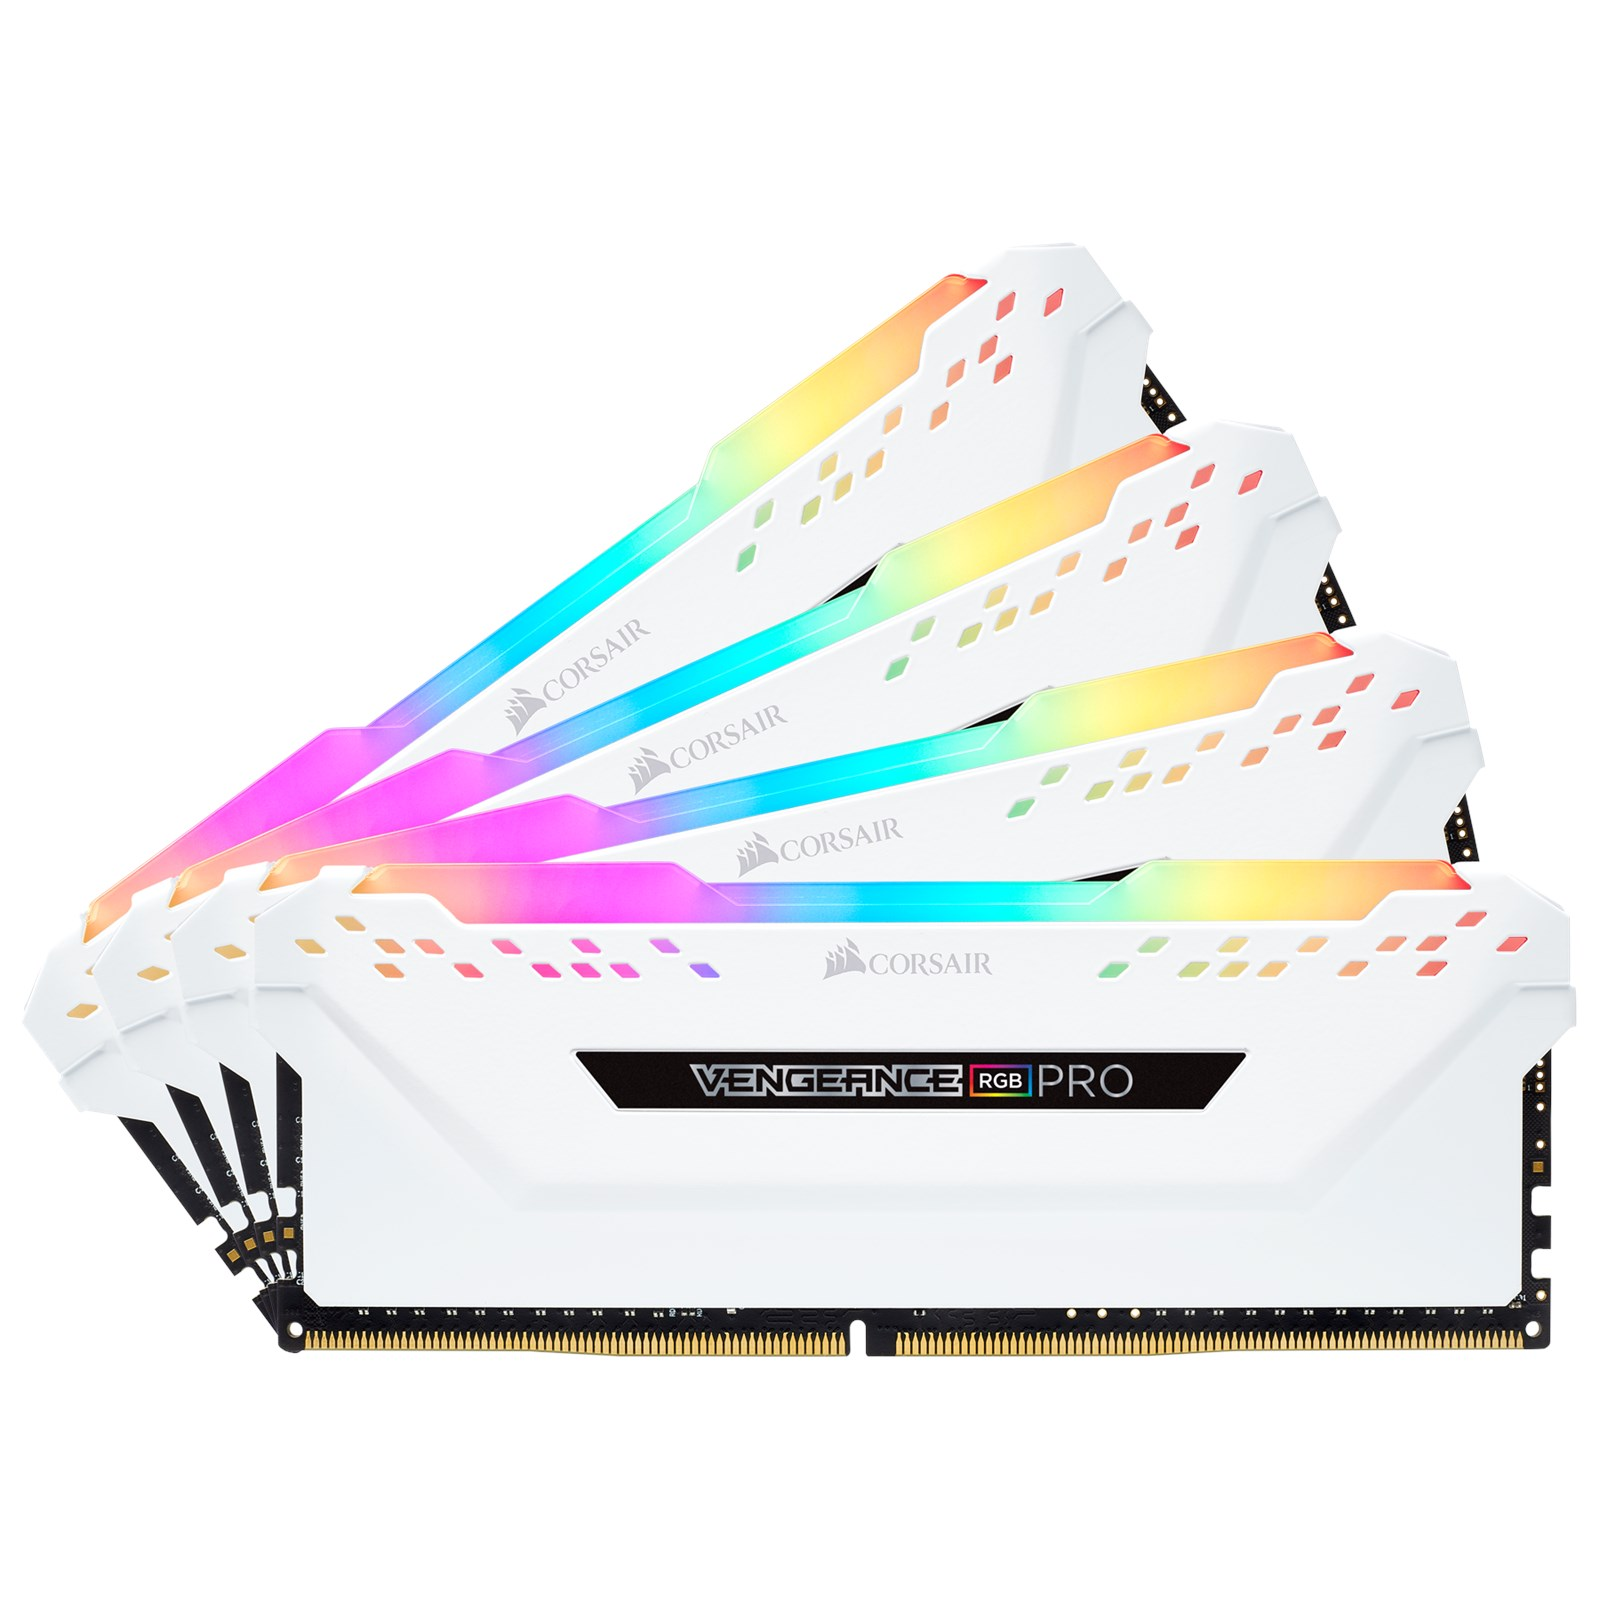 Corsair Vengeance RGB PRO 32GB (4x8GB) 3200MHz DDR4 Memory Kit